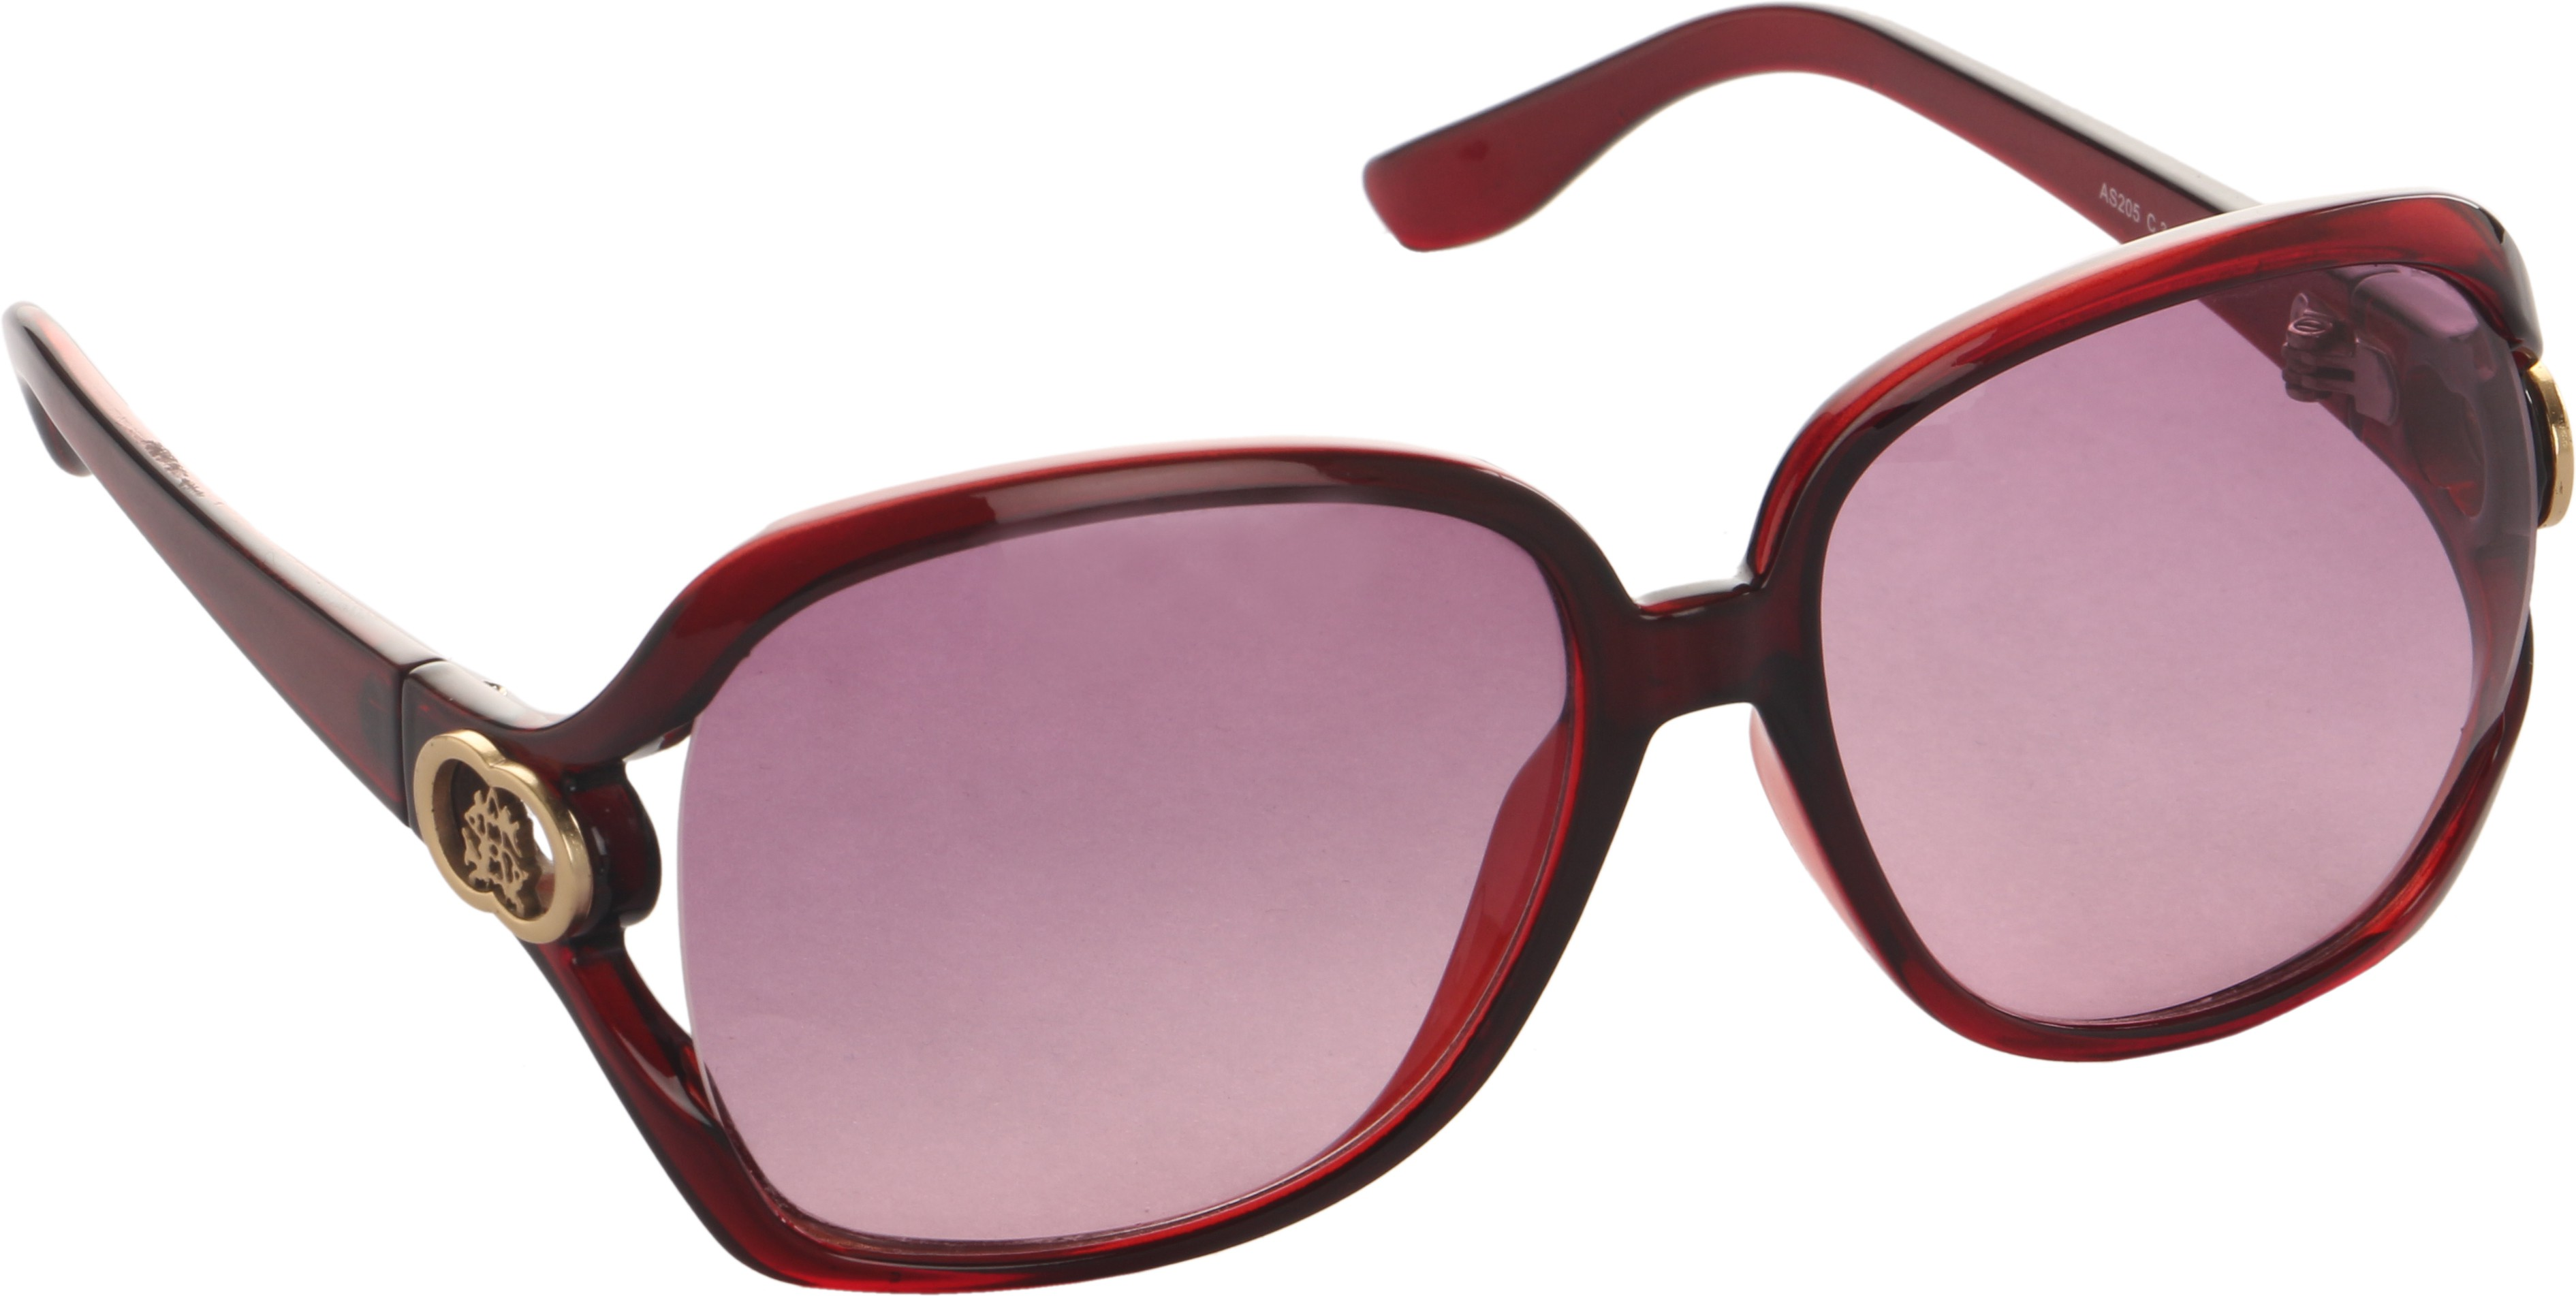 Deals - Delhi - Allen Solly & more <br> Womens Sunglasses<br> Category - sunglasses<br> Business - Flipkart.com